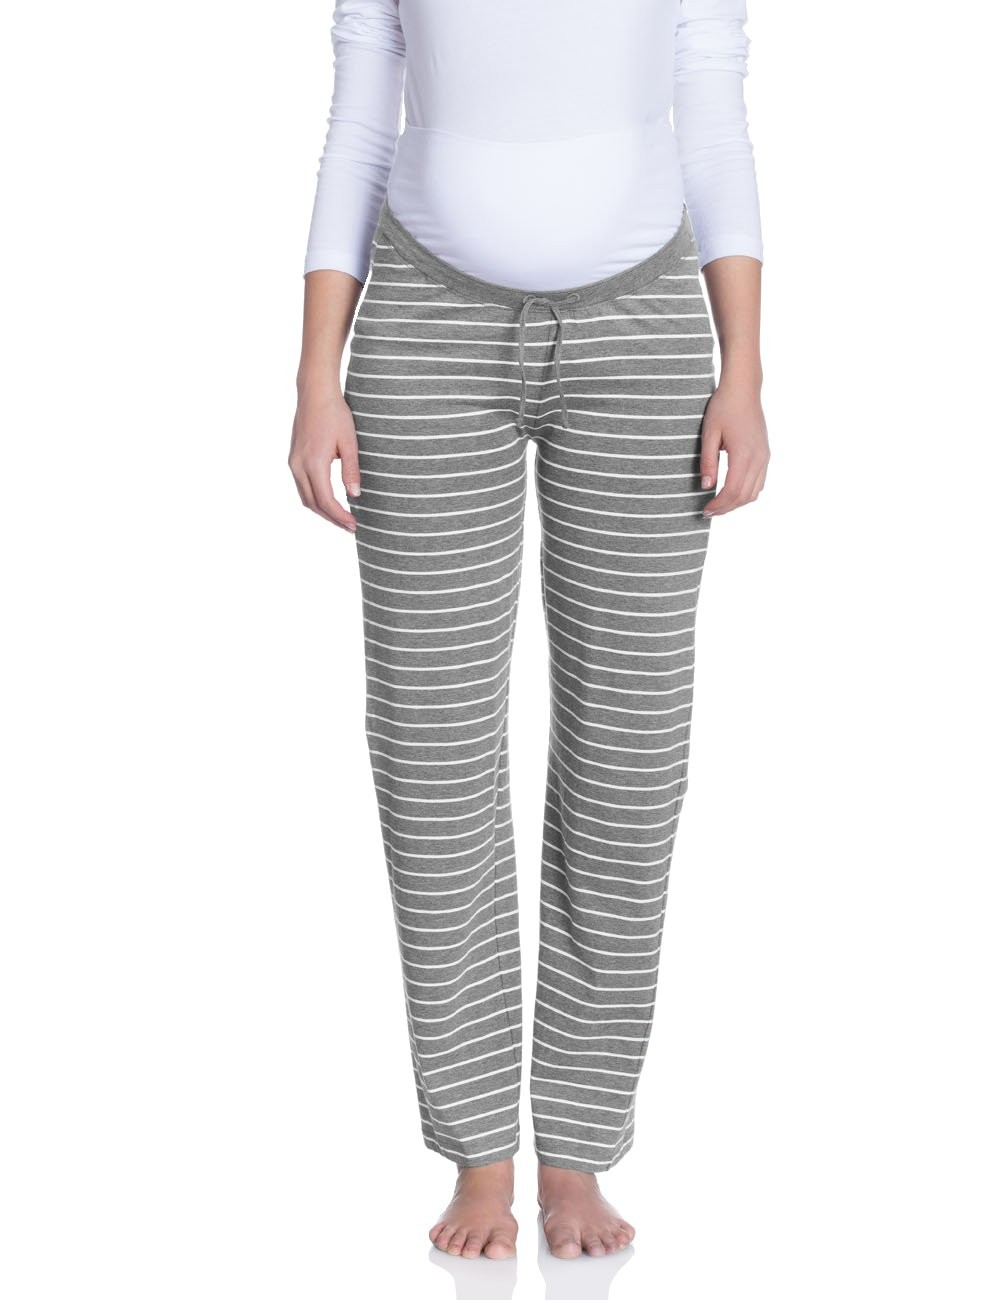 bellybutton Women's Evie Striped Maternity Pyjama Bottoms 0007424